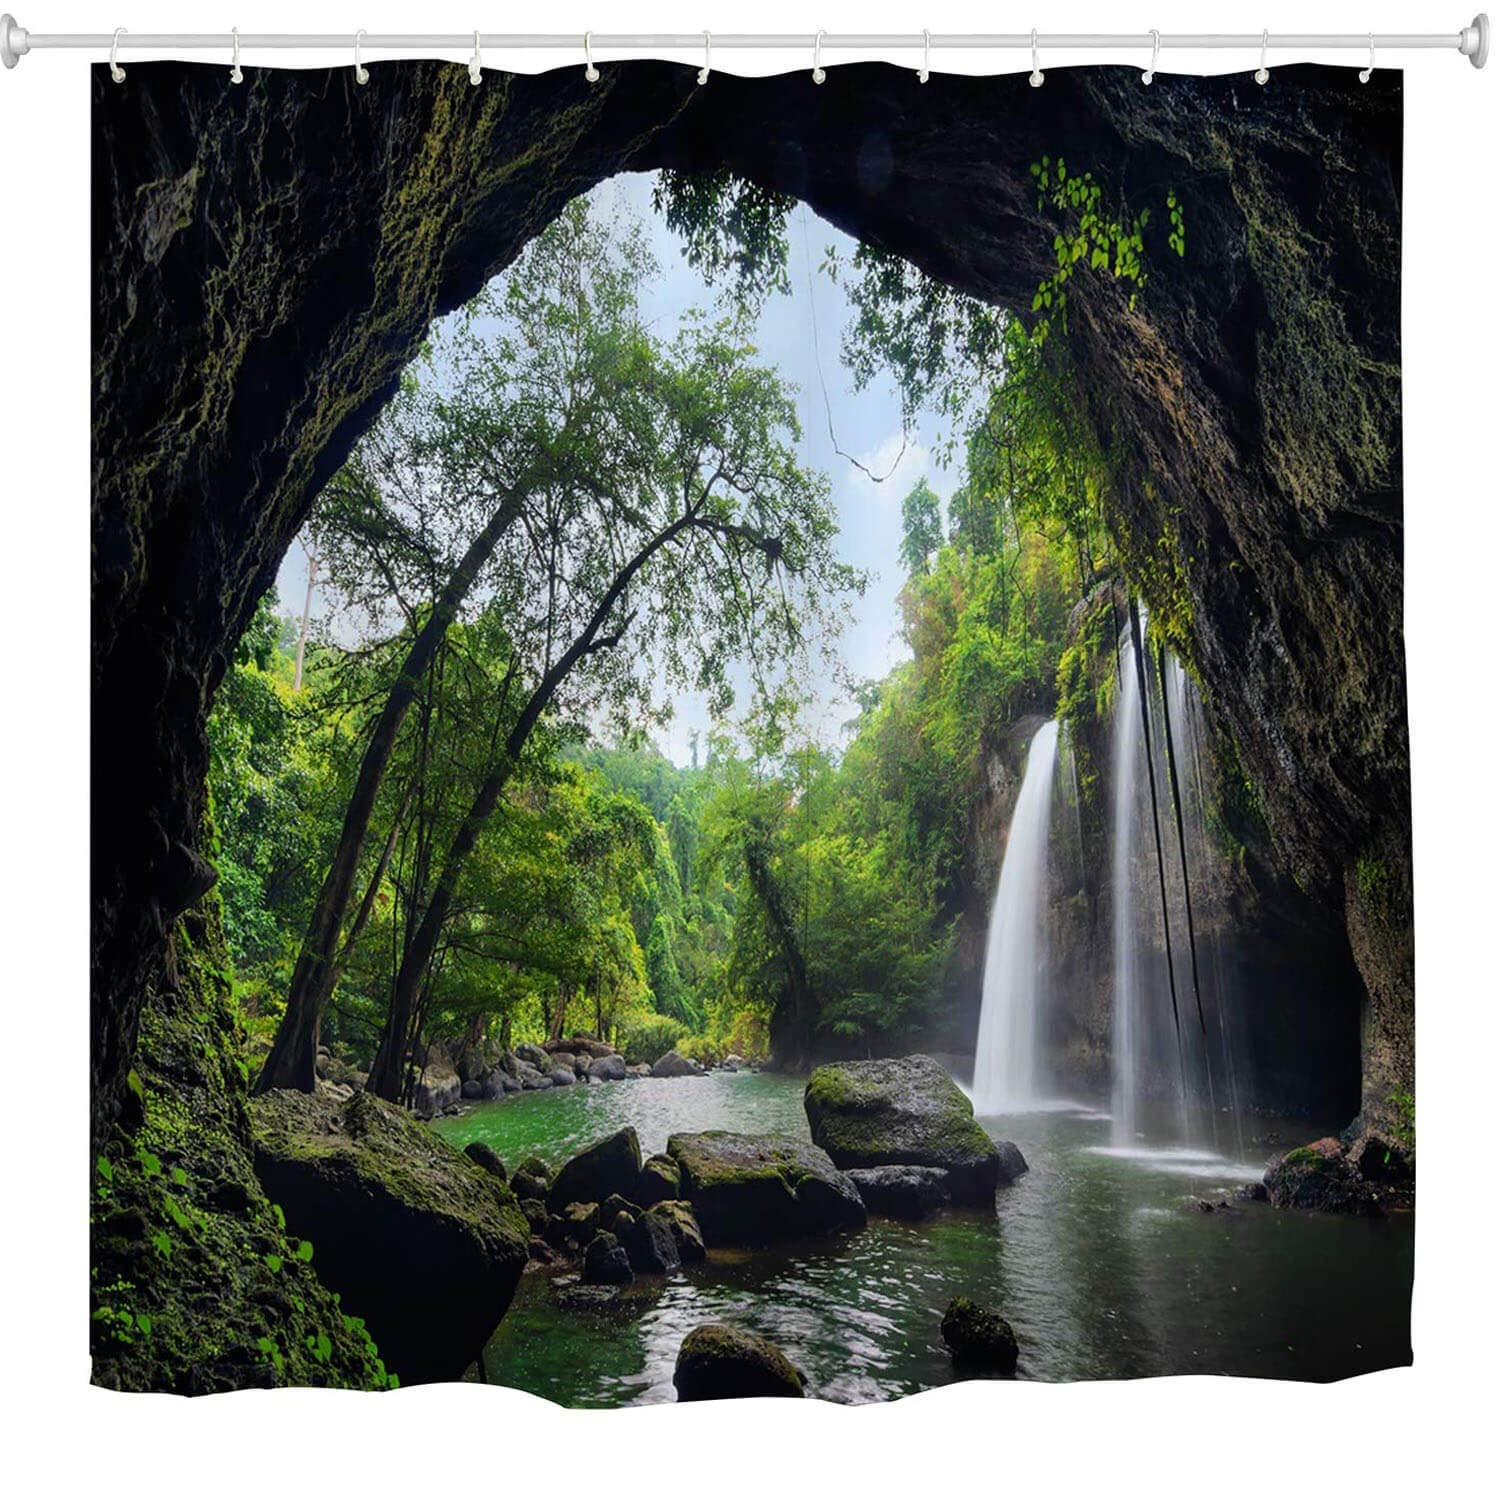 cc488d37c BROSHAN Nature Cave Shower Curtain,Cave in Waterfall National Park in  Thailand Pretty Tree Forest Jungle Jungle Rocky Scenery Printed,Polyester  Waterproof ...